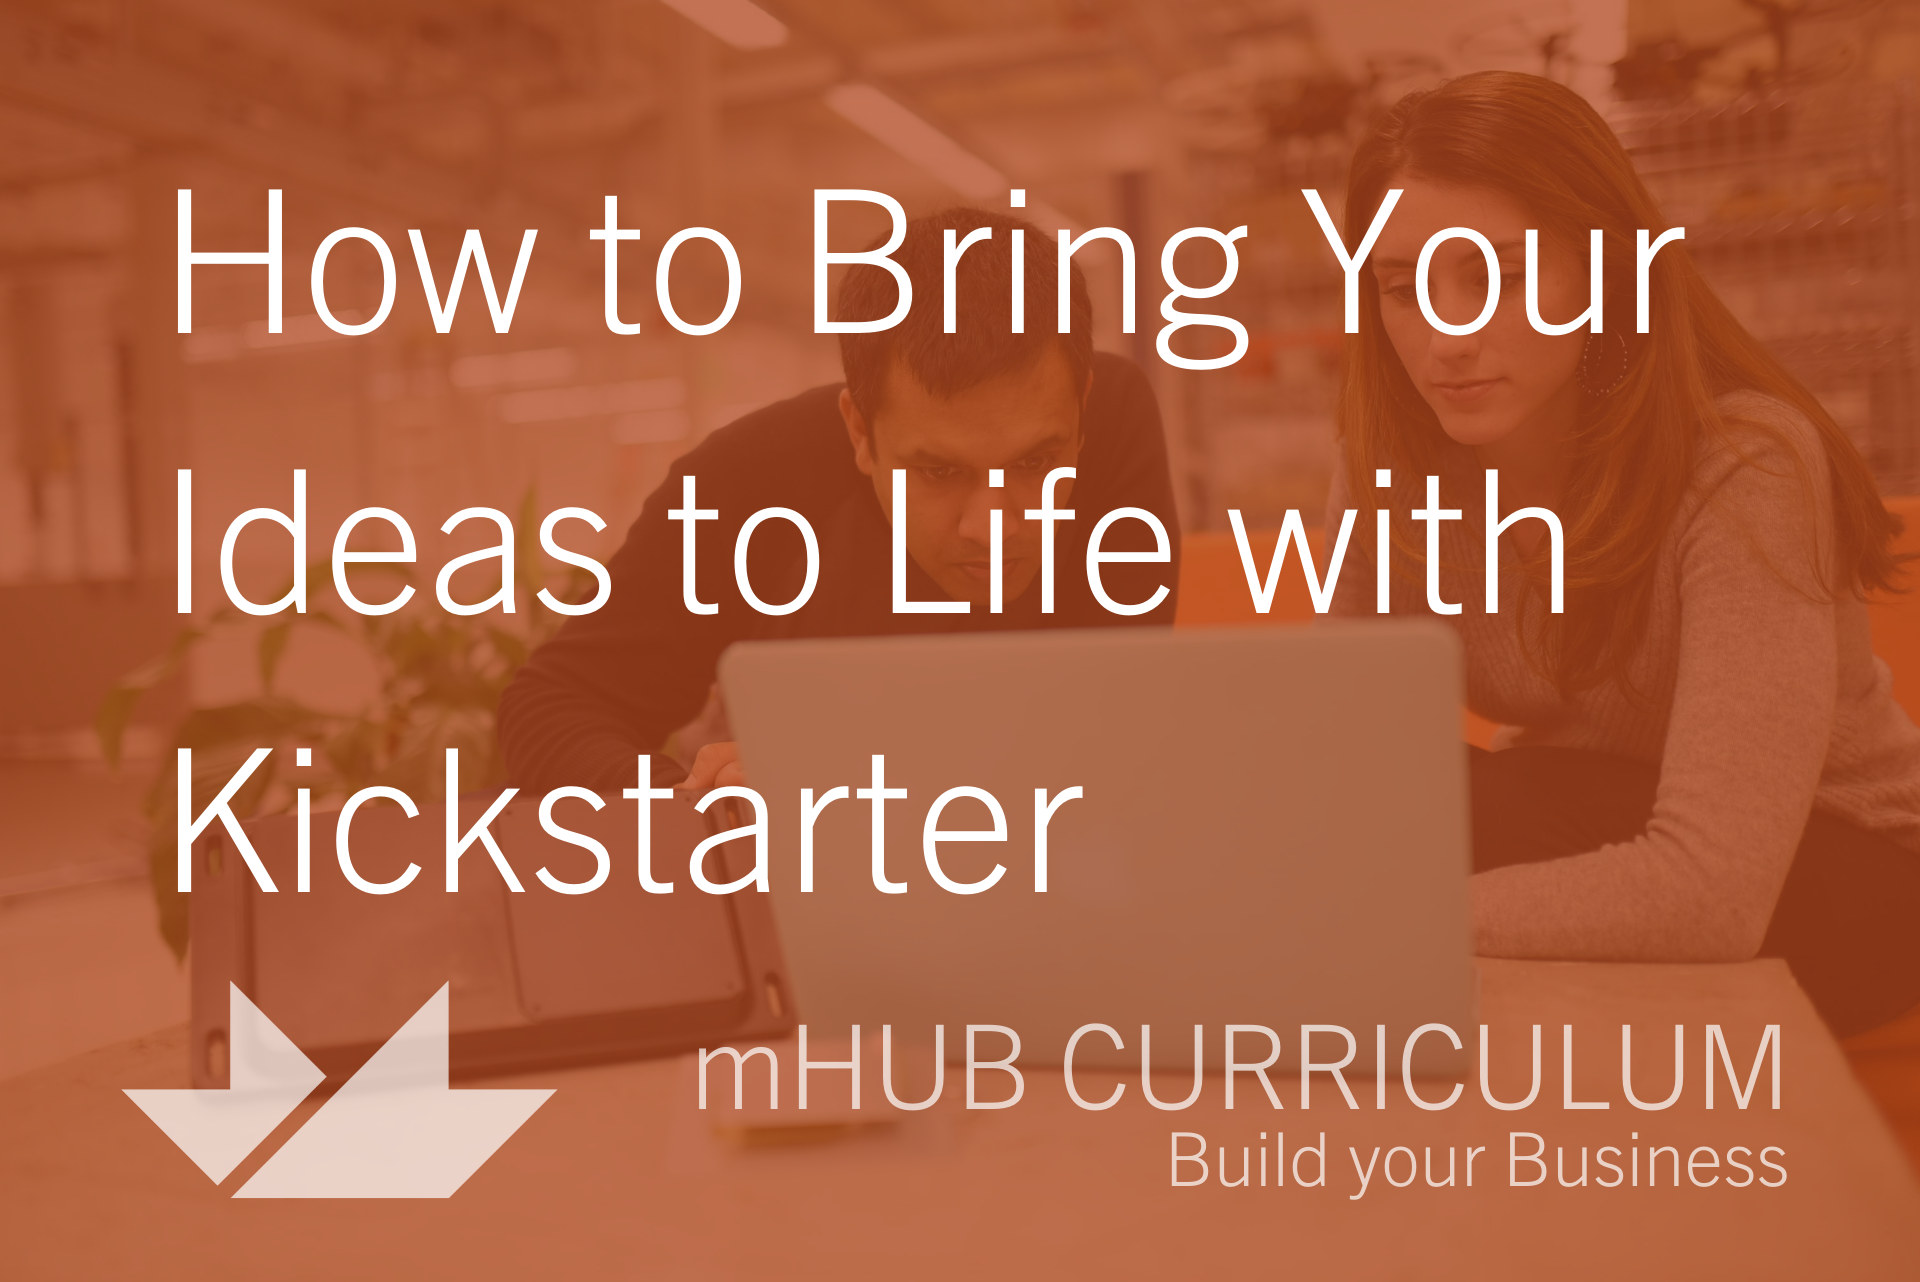 How to Bring Your Ideas to Life with Kickstarter